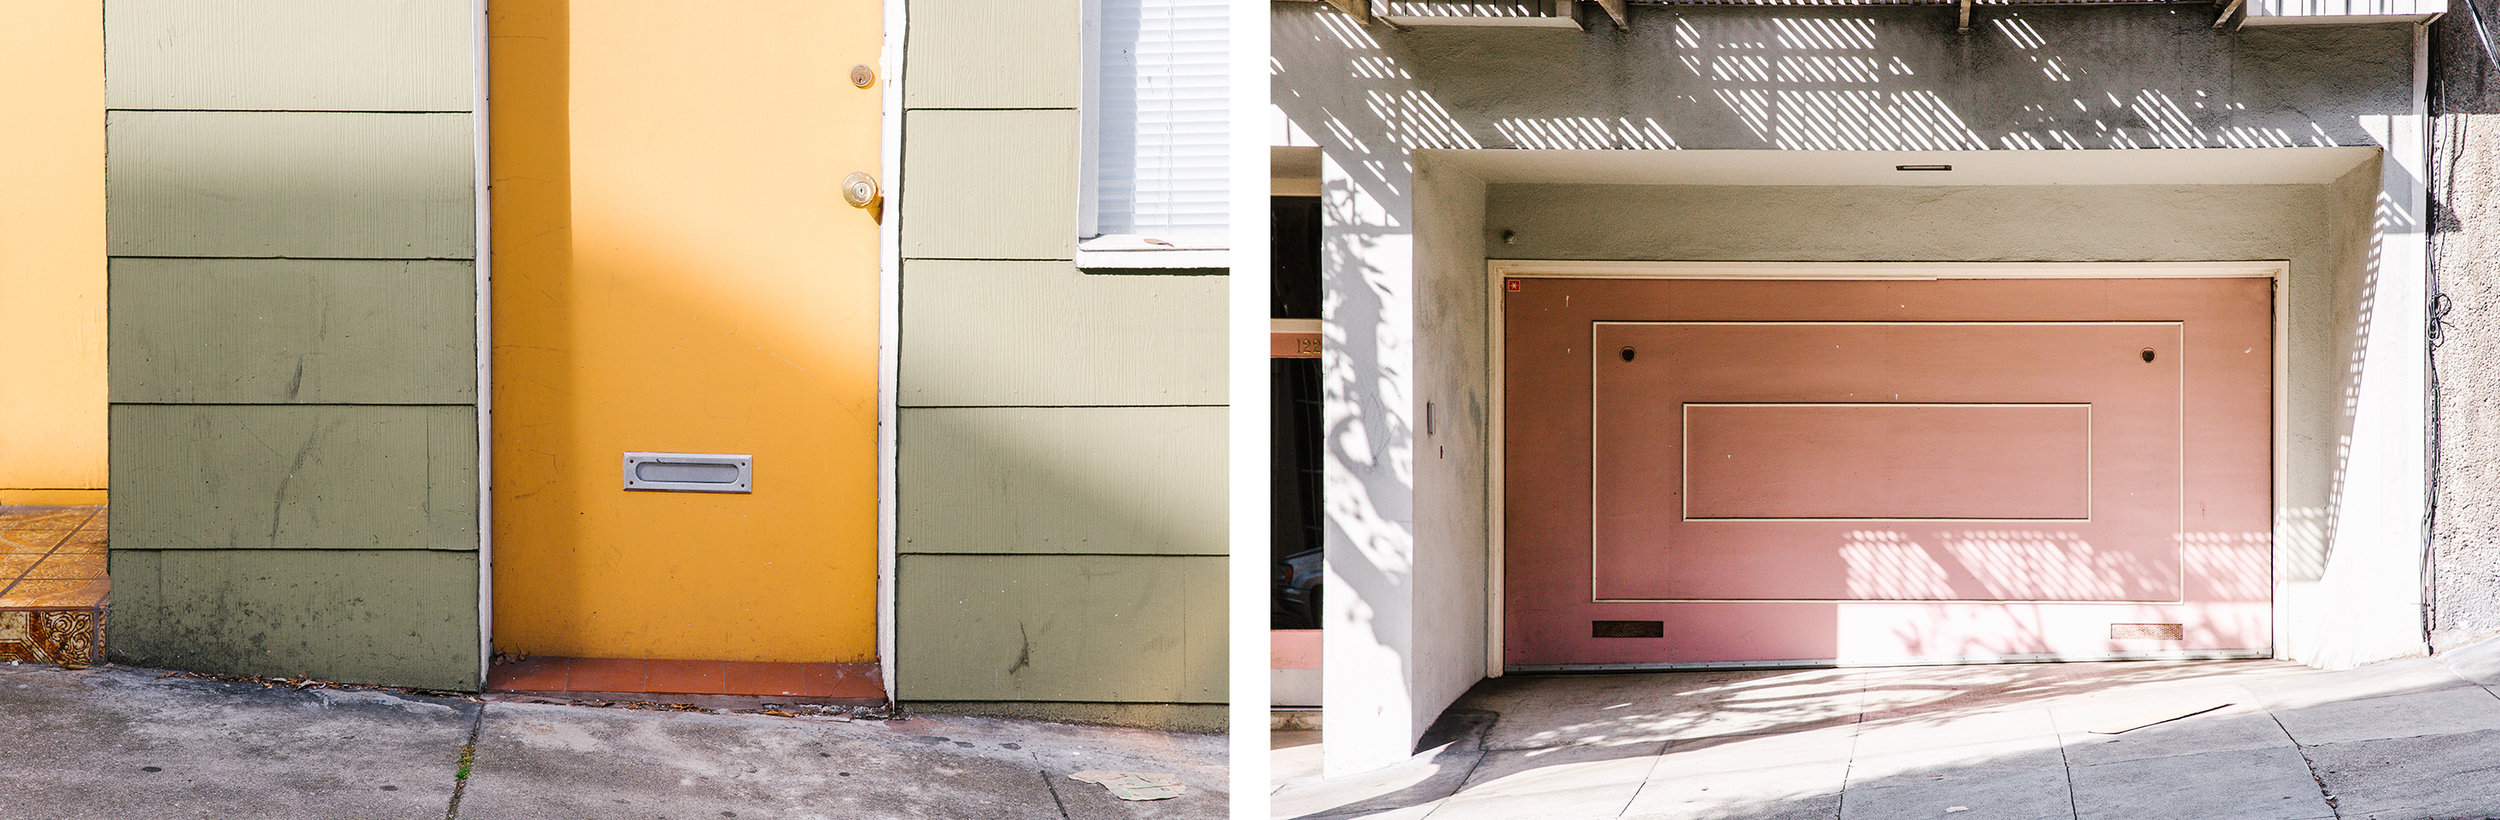 doors of san francisco.jpg